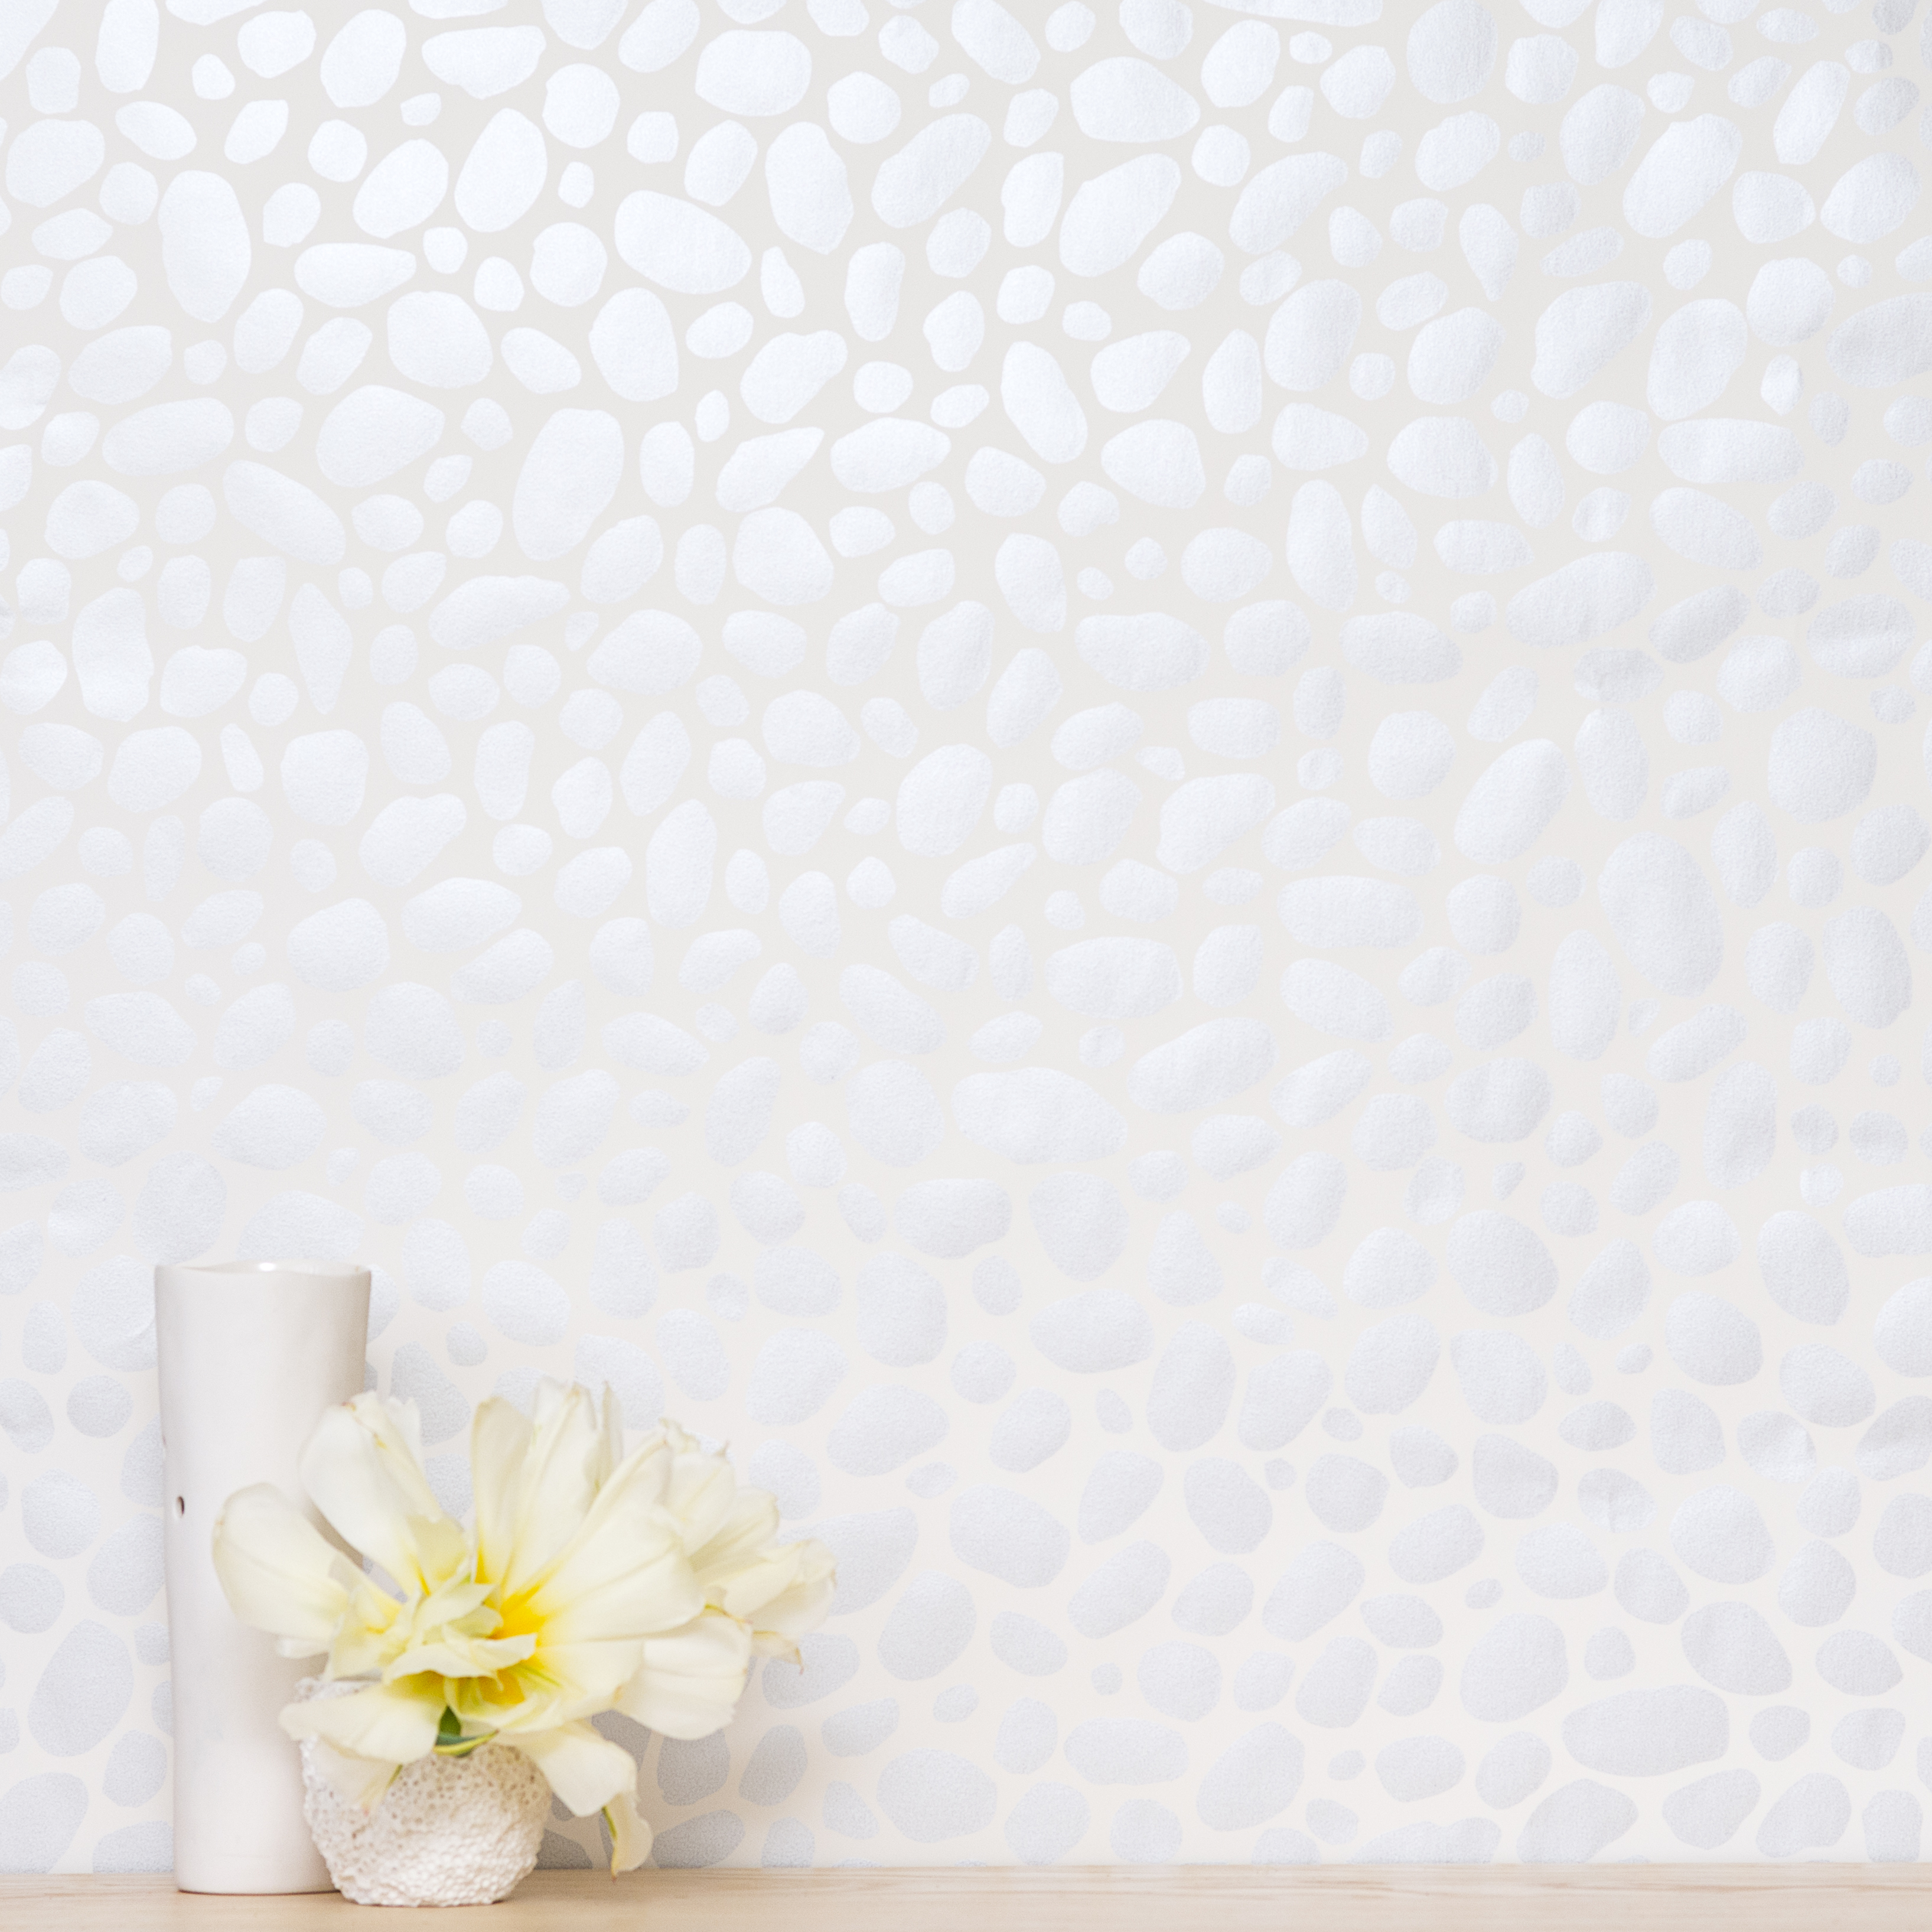 Hoya wallpaper with silver on a cream backdrop from Juju